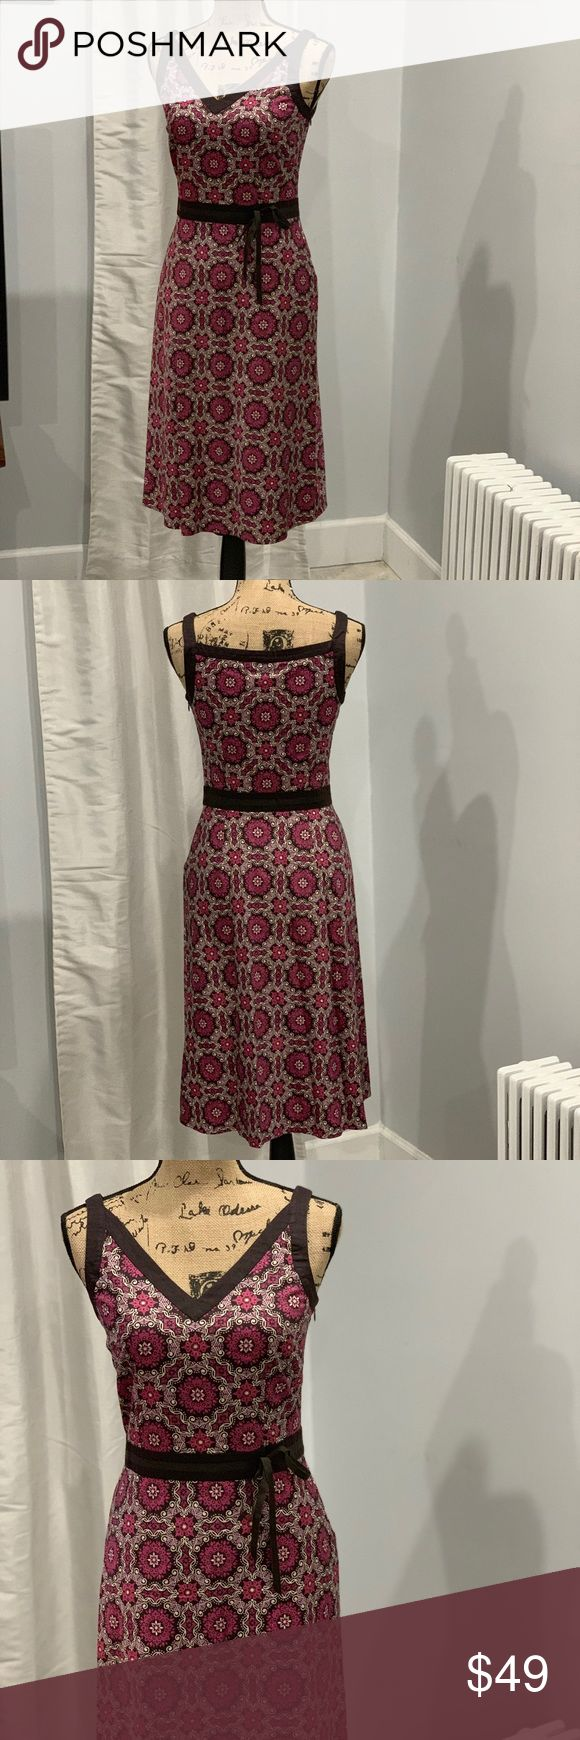 🛍Ann Taylor Loft dress size 2 Fully lined  Bust 17 inches laying flat  Waist 14 inches laying flat  Hips 20 inches laying flat  Length 41 inches laying flat You can shop with confidence because I have hundreds of sales with five star reviews ⭐️ ⭐️ ⭐️ ⭐️ ⭐️   My home is clean and smoke-free.    Most items ship out within 24 hours.   Get an extra discount when you bundle two or more items.    I try my best to answer questions promptly. LOFT Dresses Midi